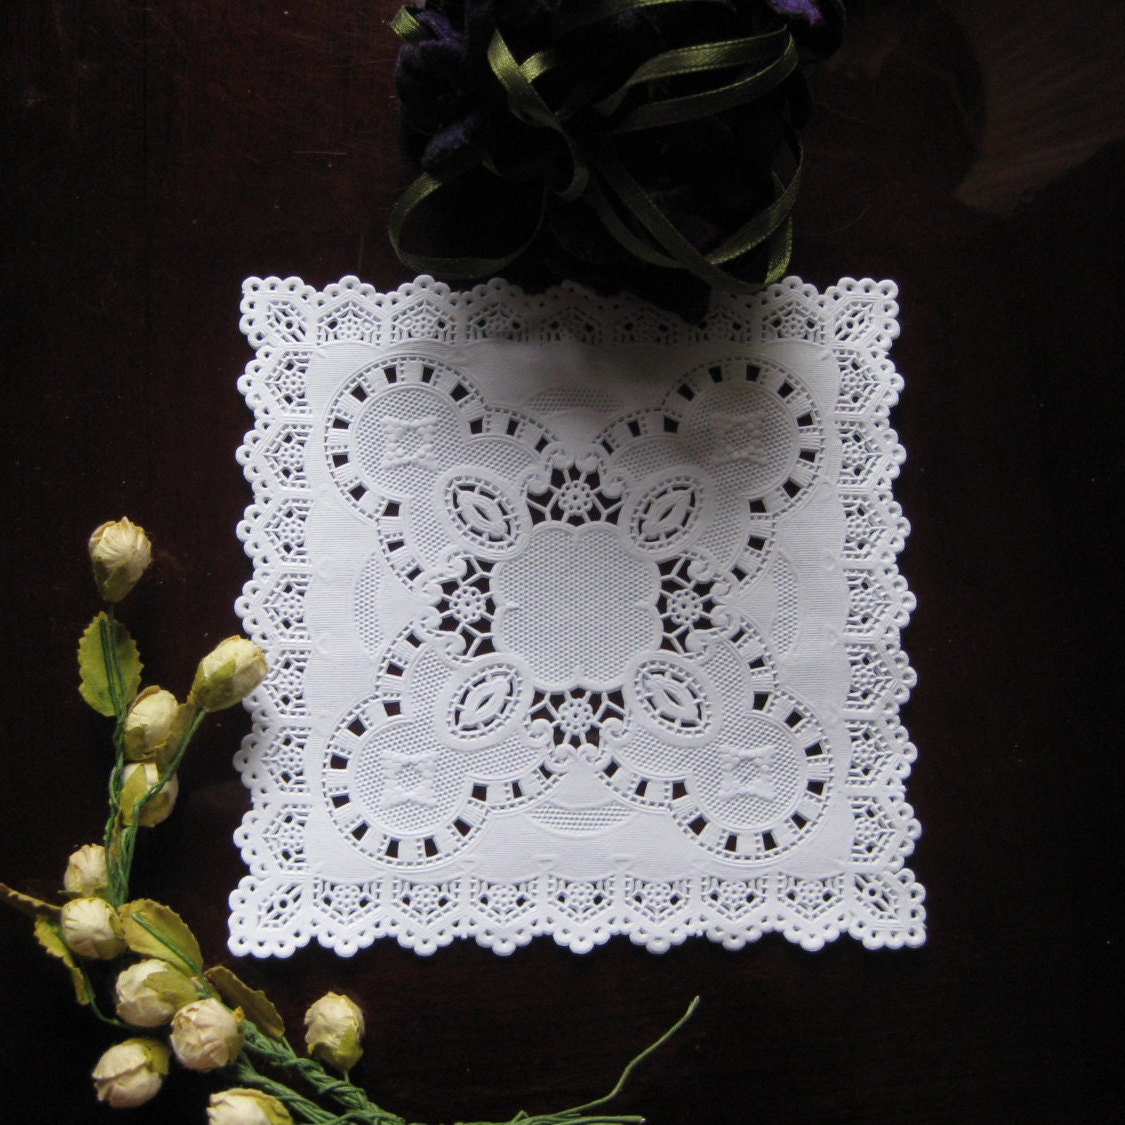 9 inch square paper doilies Also available is a medley of colorful options, disposable paper doilies work  great for  10 inch and 12 inch --the larger sizes serve as a great protective  barrier.